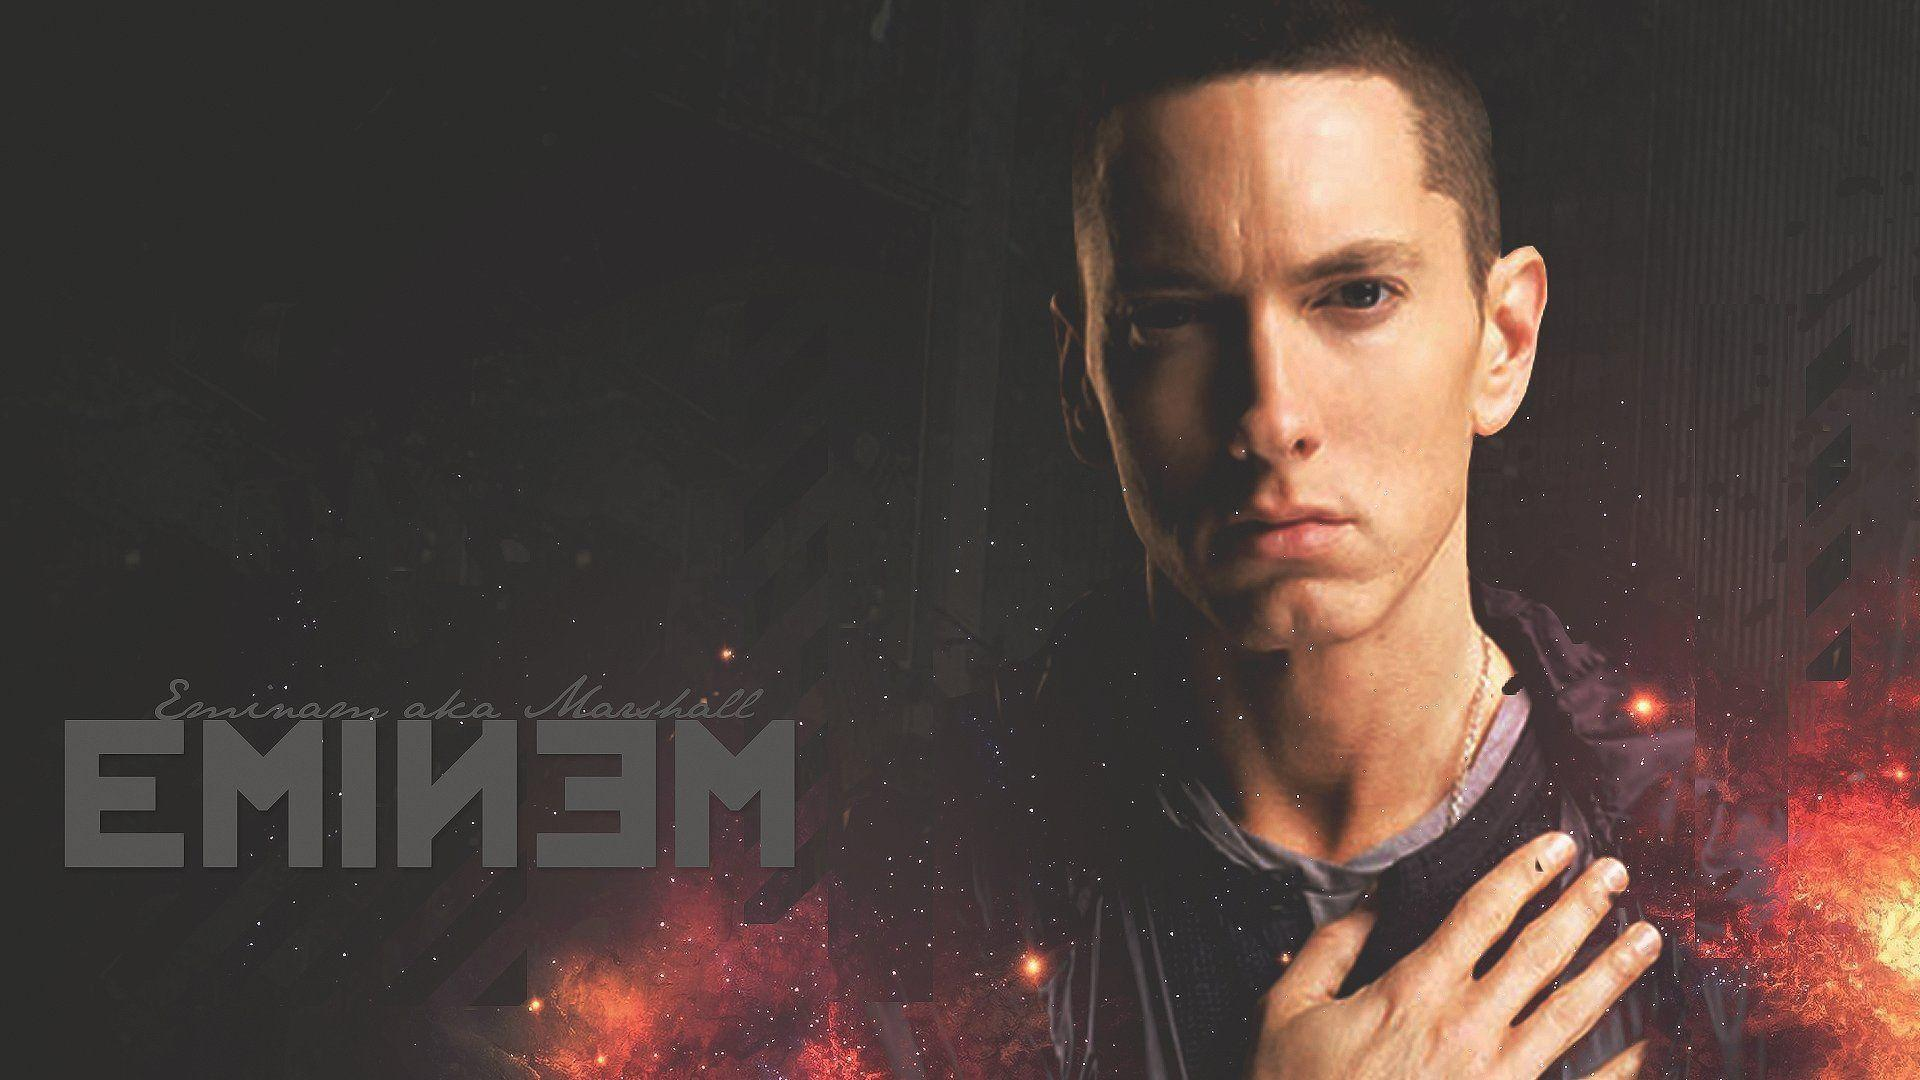 Eminem Wallpapers | AMBWallpapers